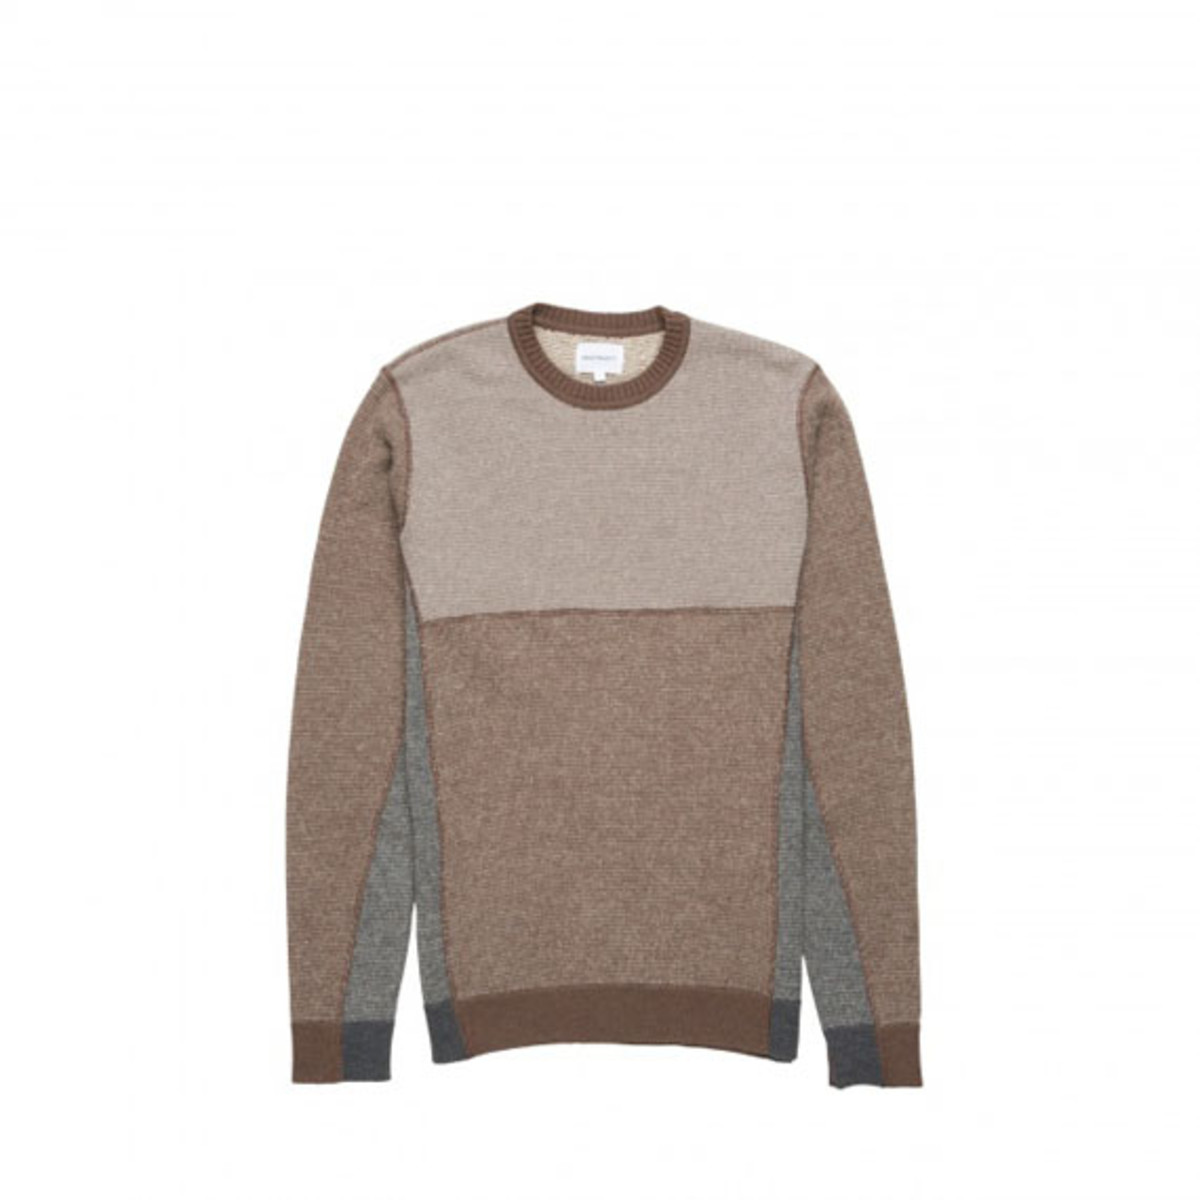 norse-projects-fall-winter-2013-collection-10